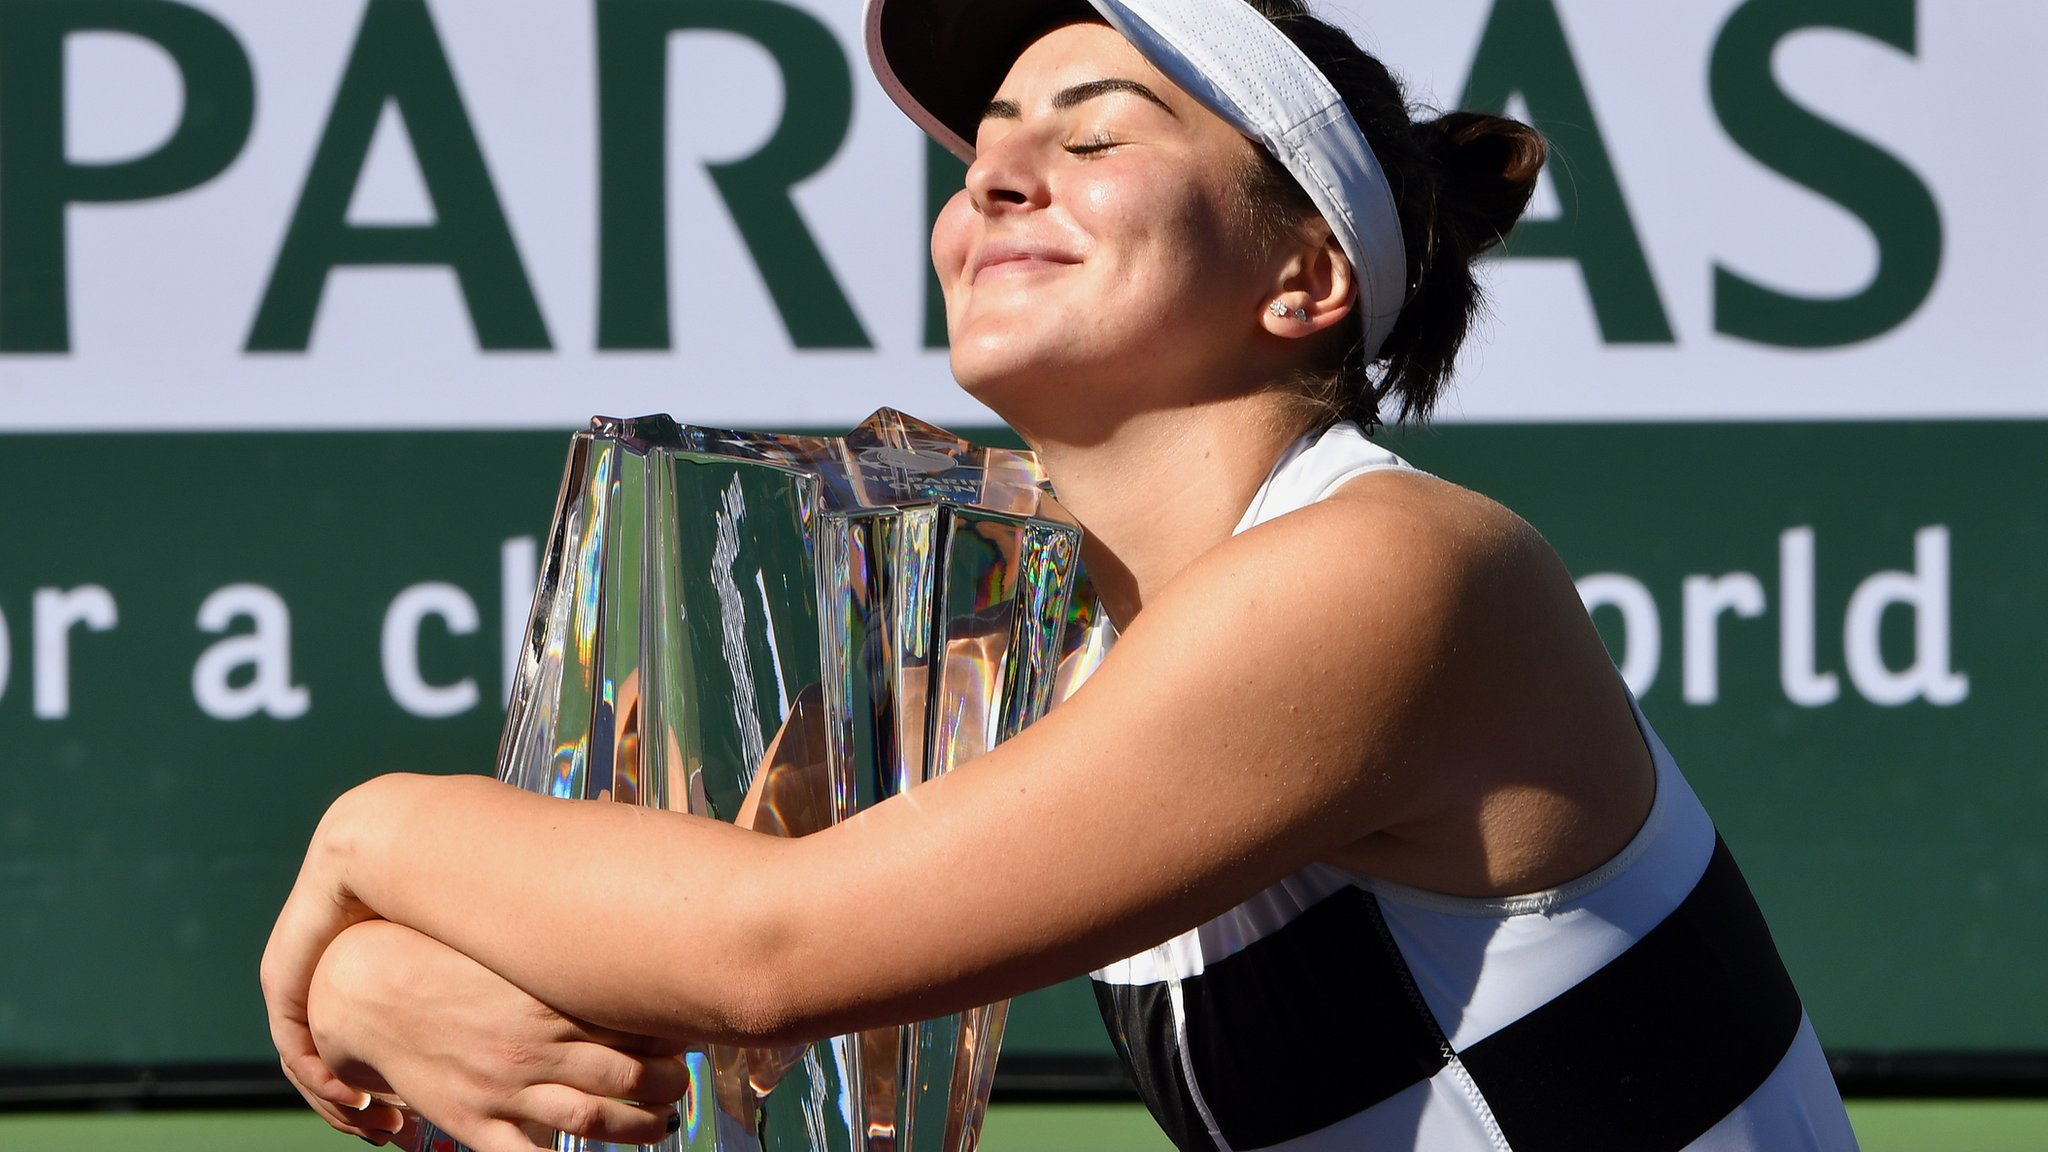 Wildcard Andreescu wins Indian Wells title